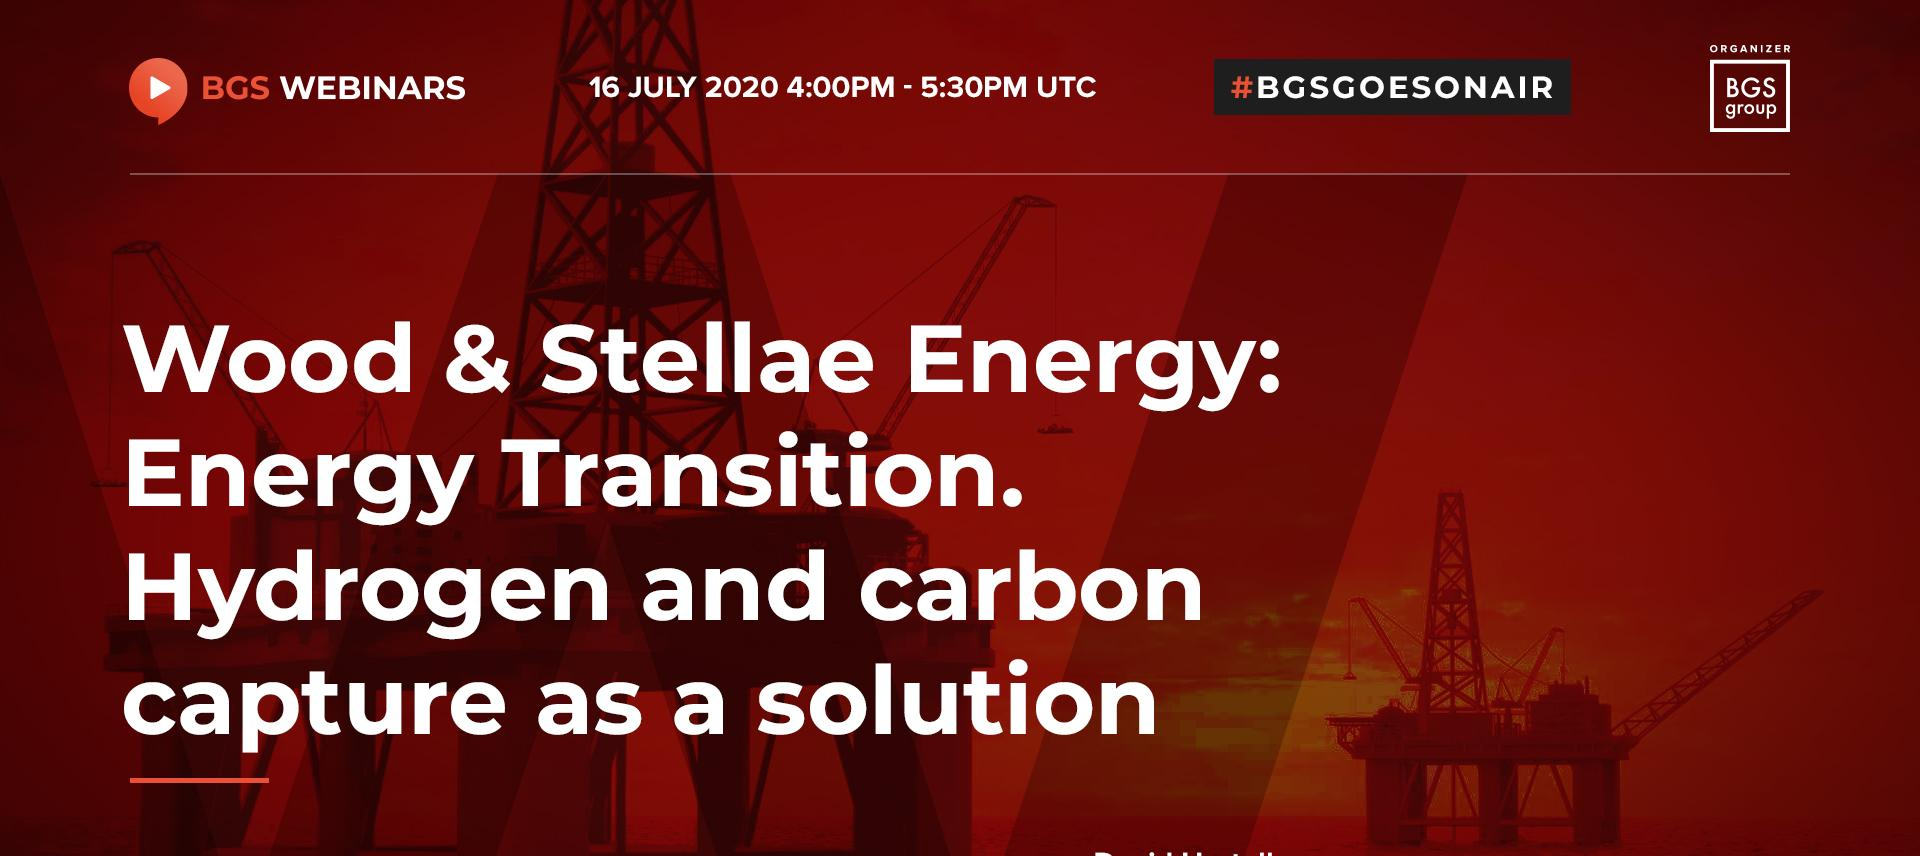 Wood & Stellae Energy: Energy Transition. Hydrogen and carbon capture as a solution